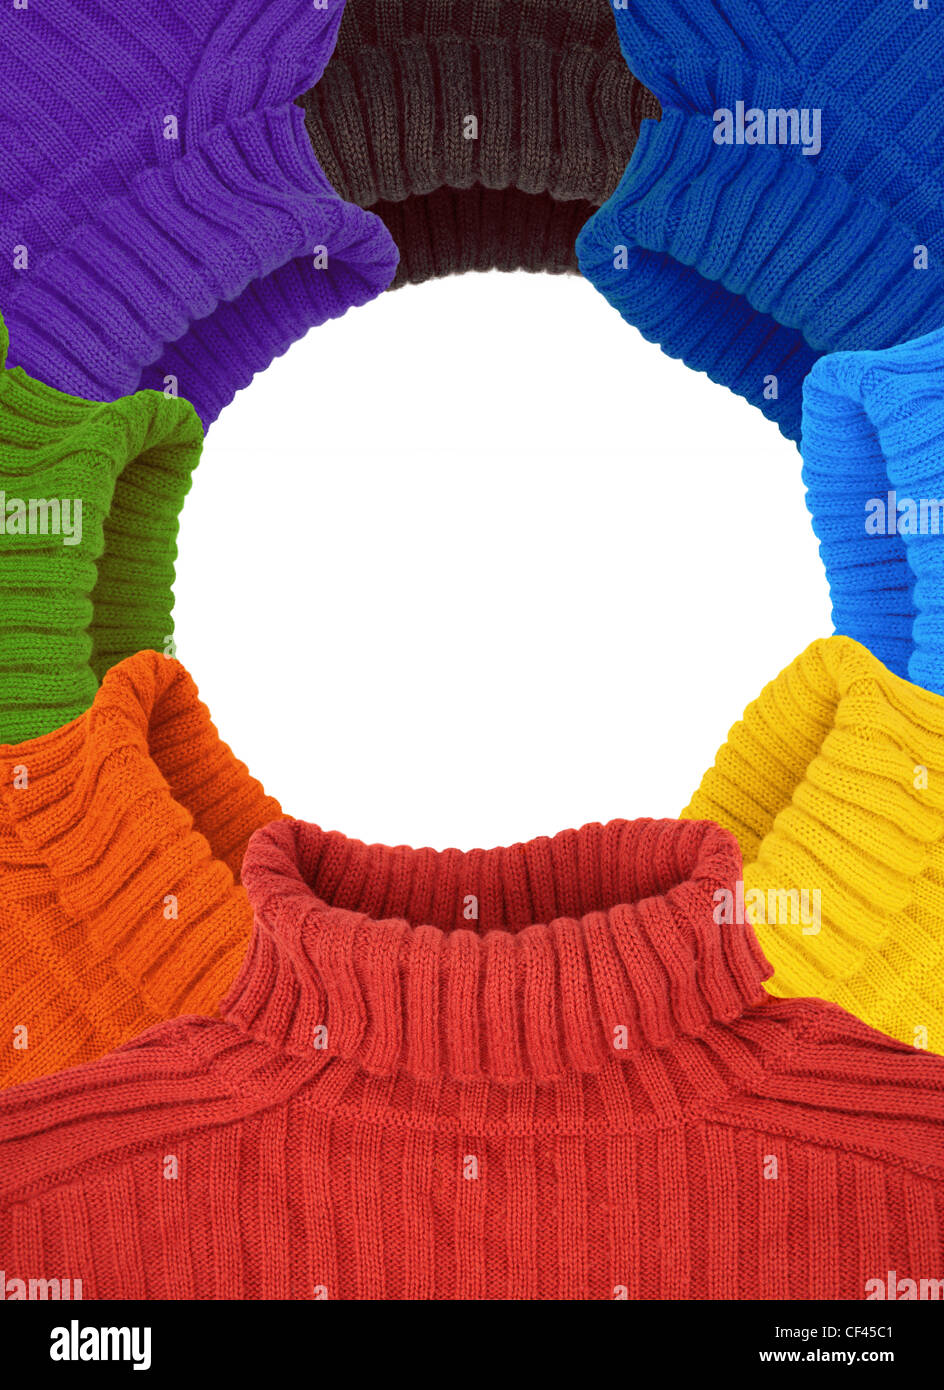 Round Frame Of Multi Color Rainbow Sweaters Collage Stock Photo